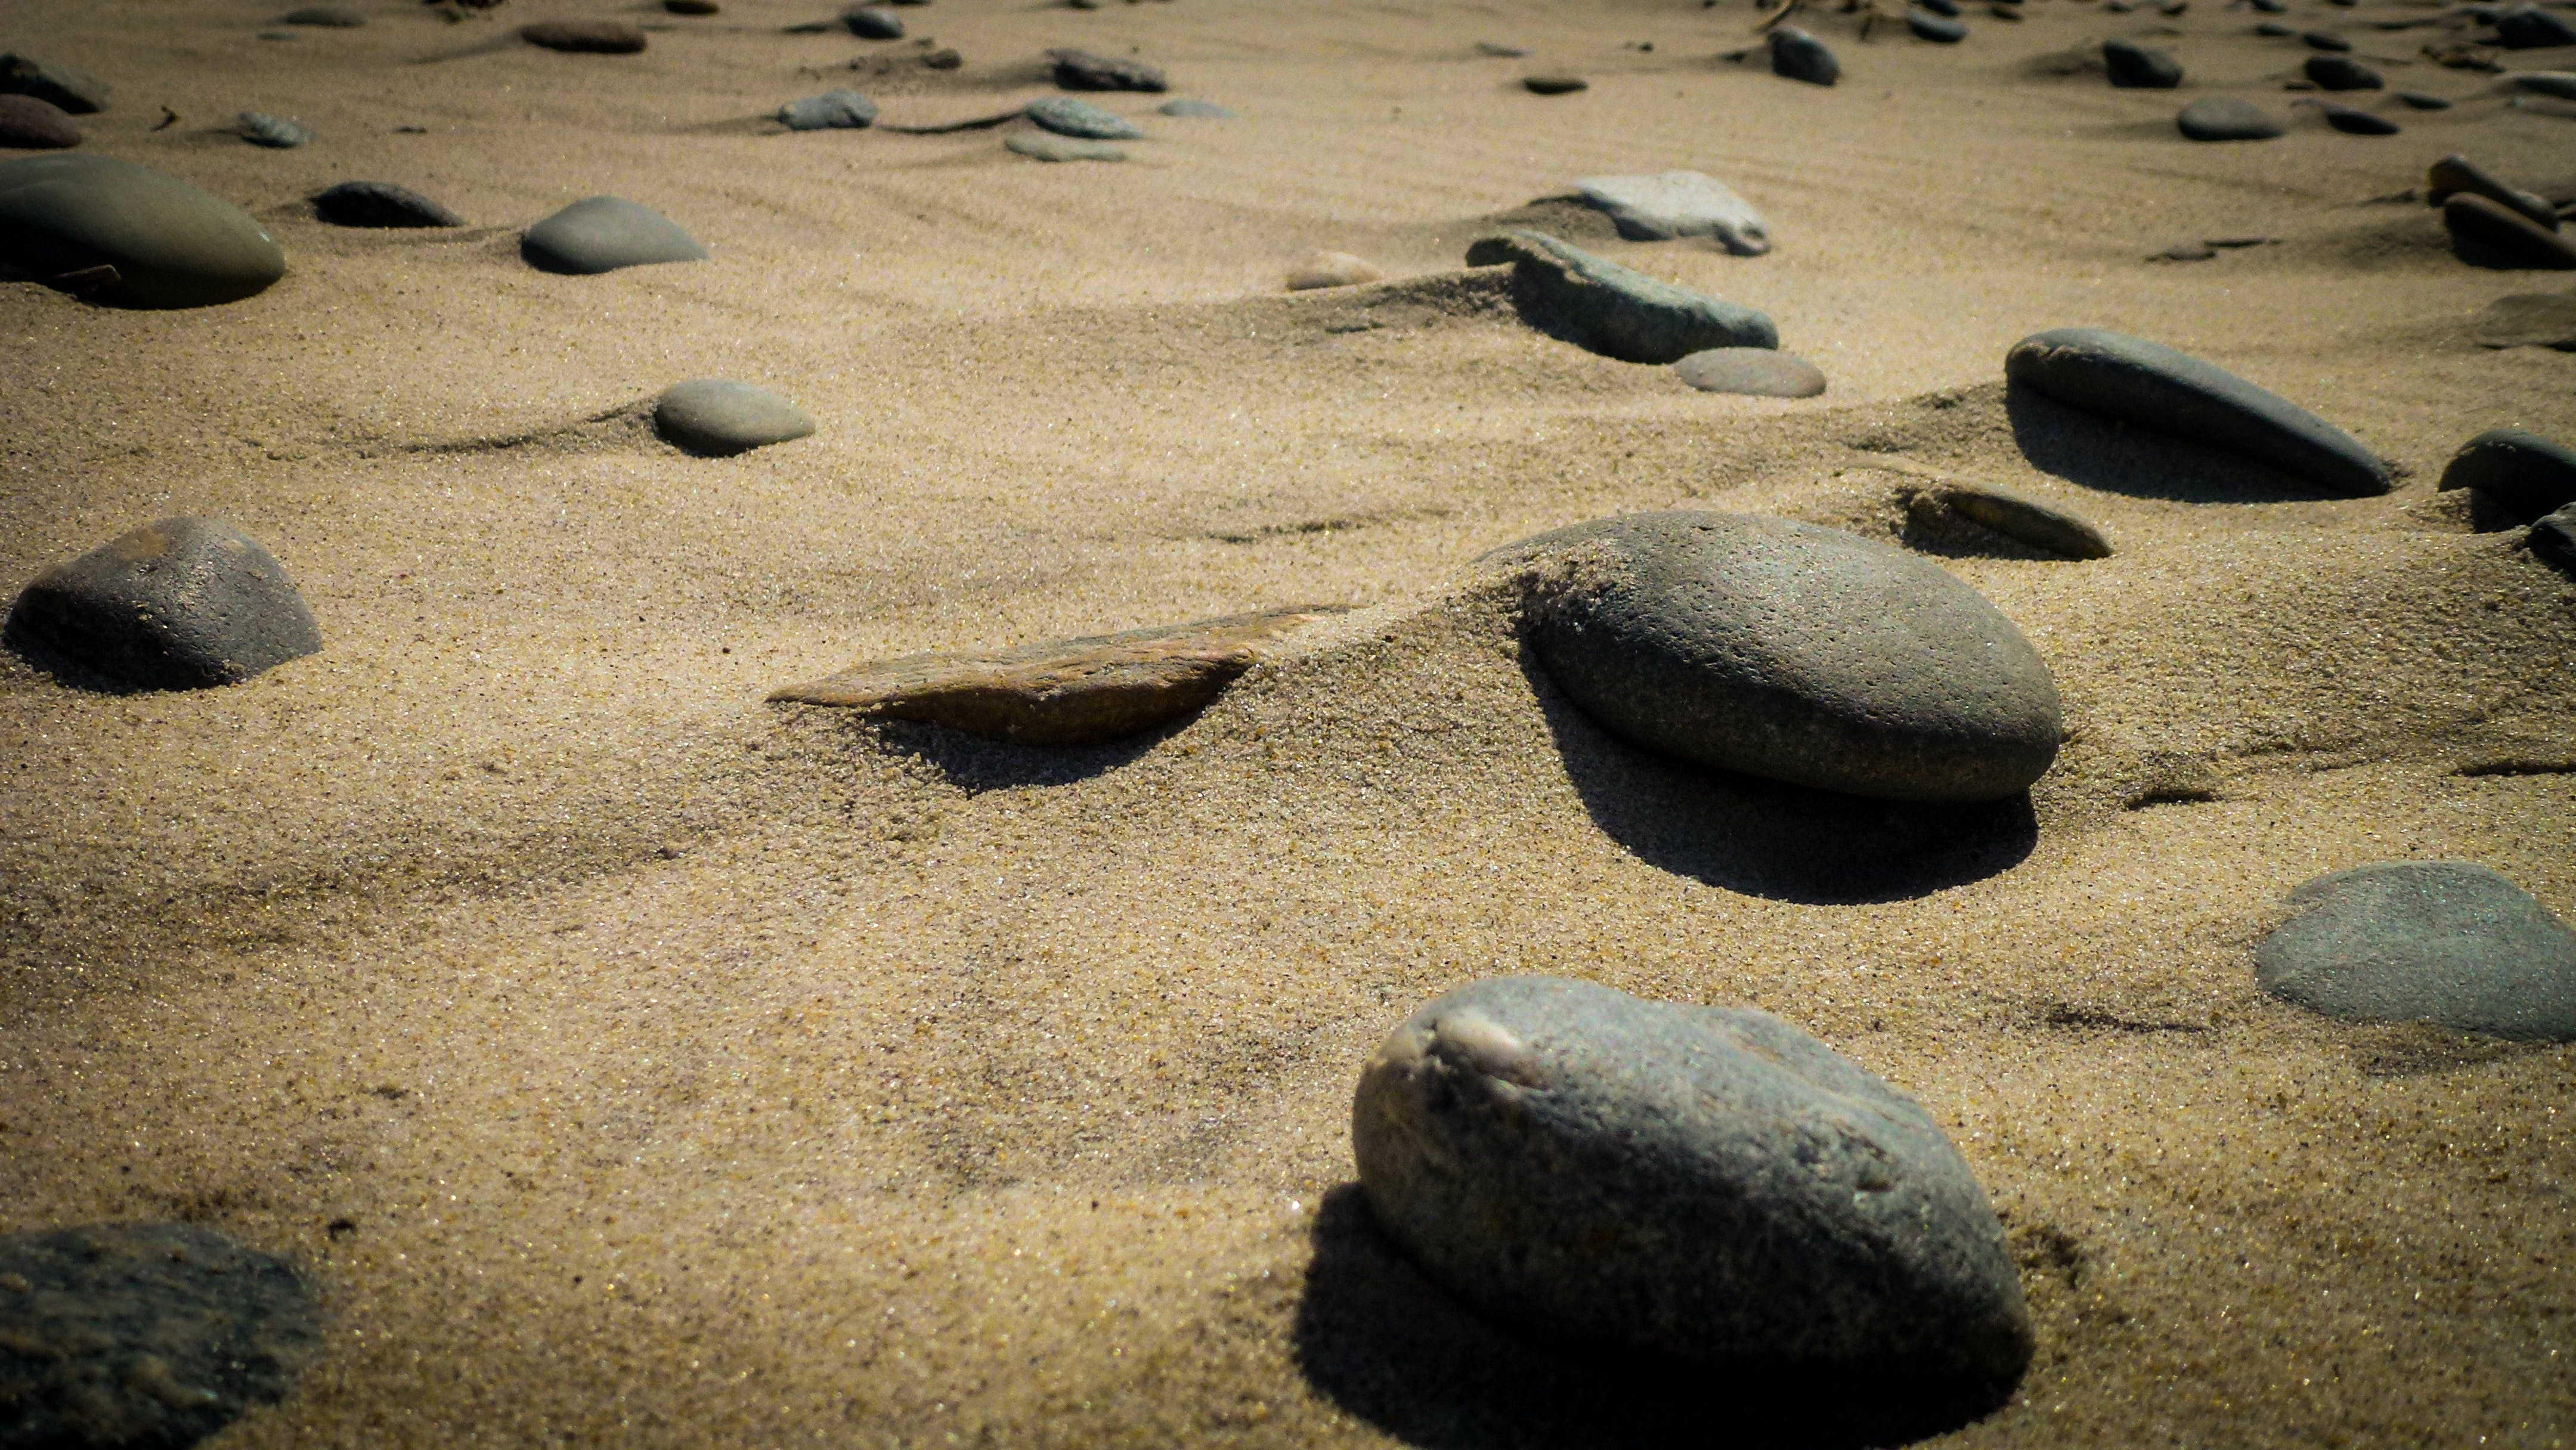 Closeup Photography of Assorted Stones on Brown Sand